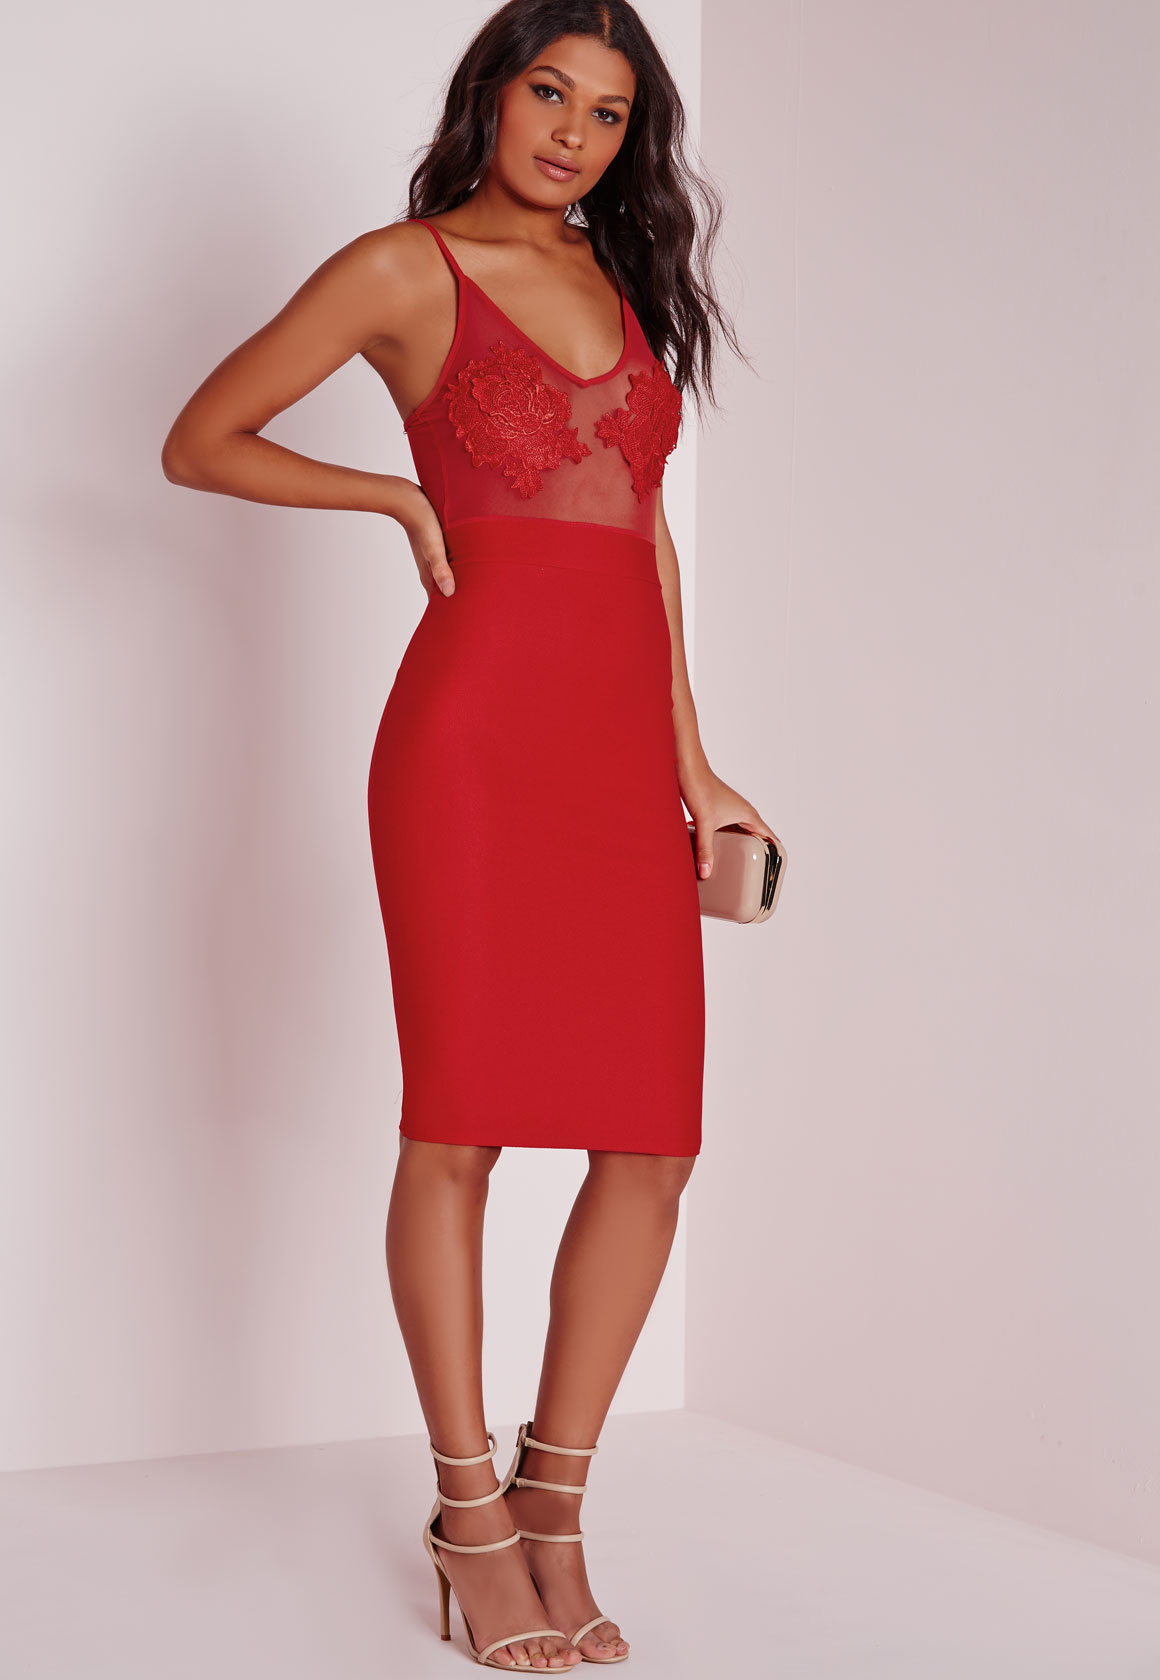 Red bodycon dress h&m